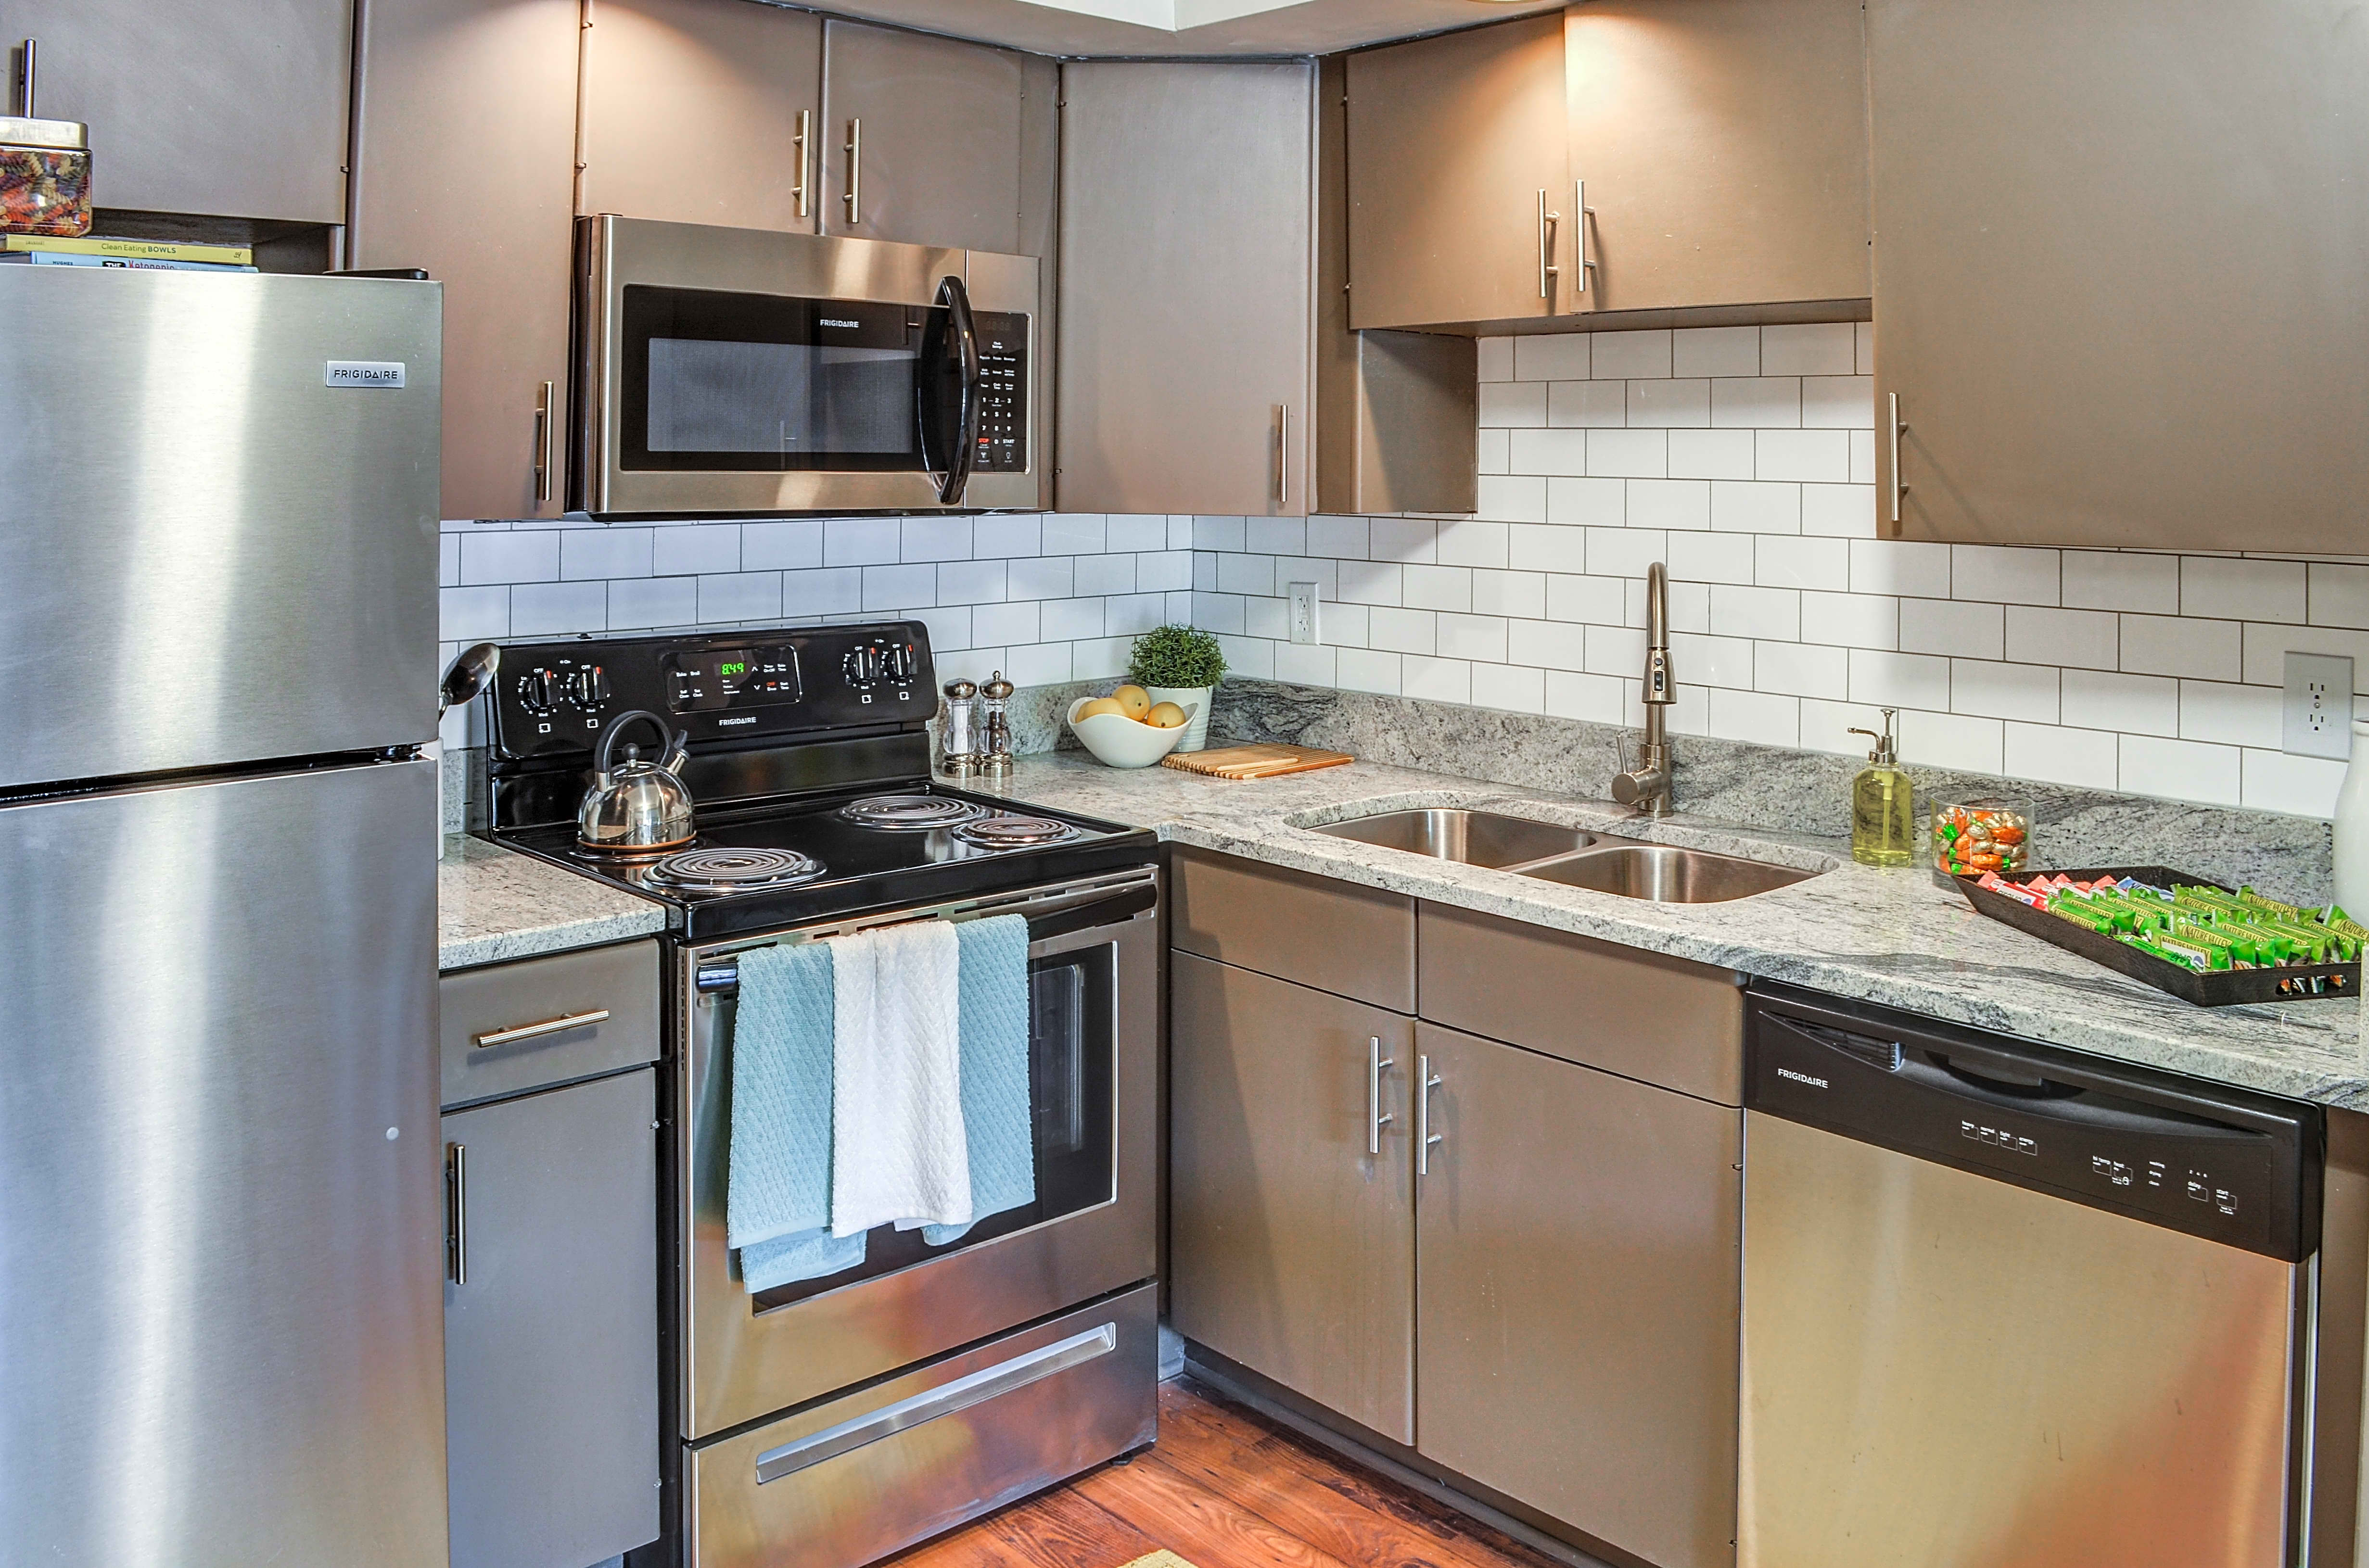 Can you please remove the dish towels from the stove since they are crooked? Thanks!